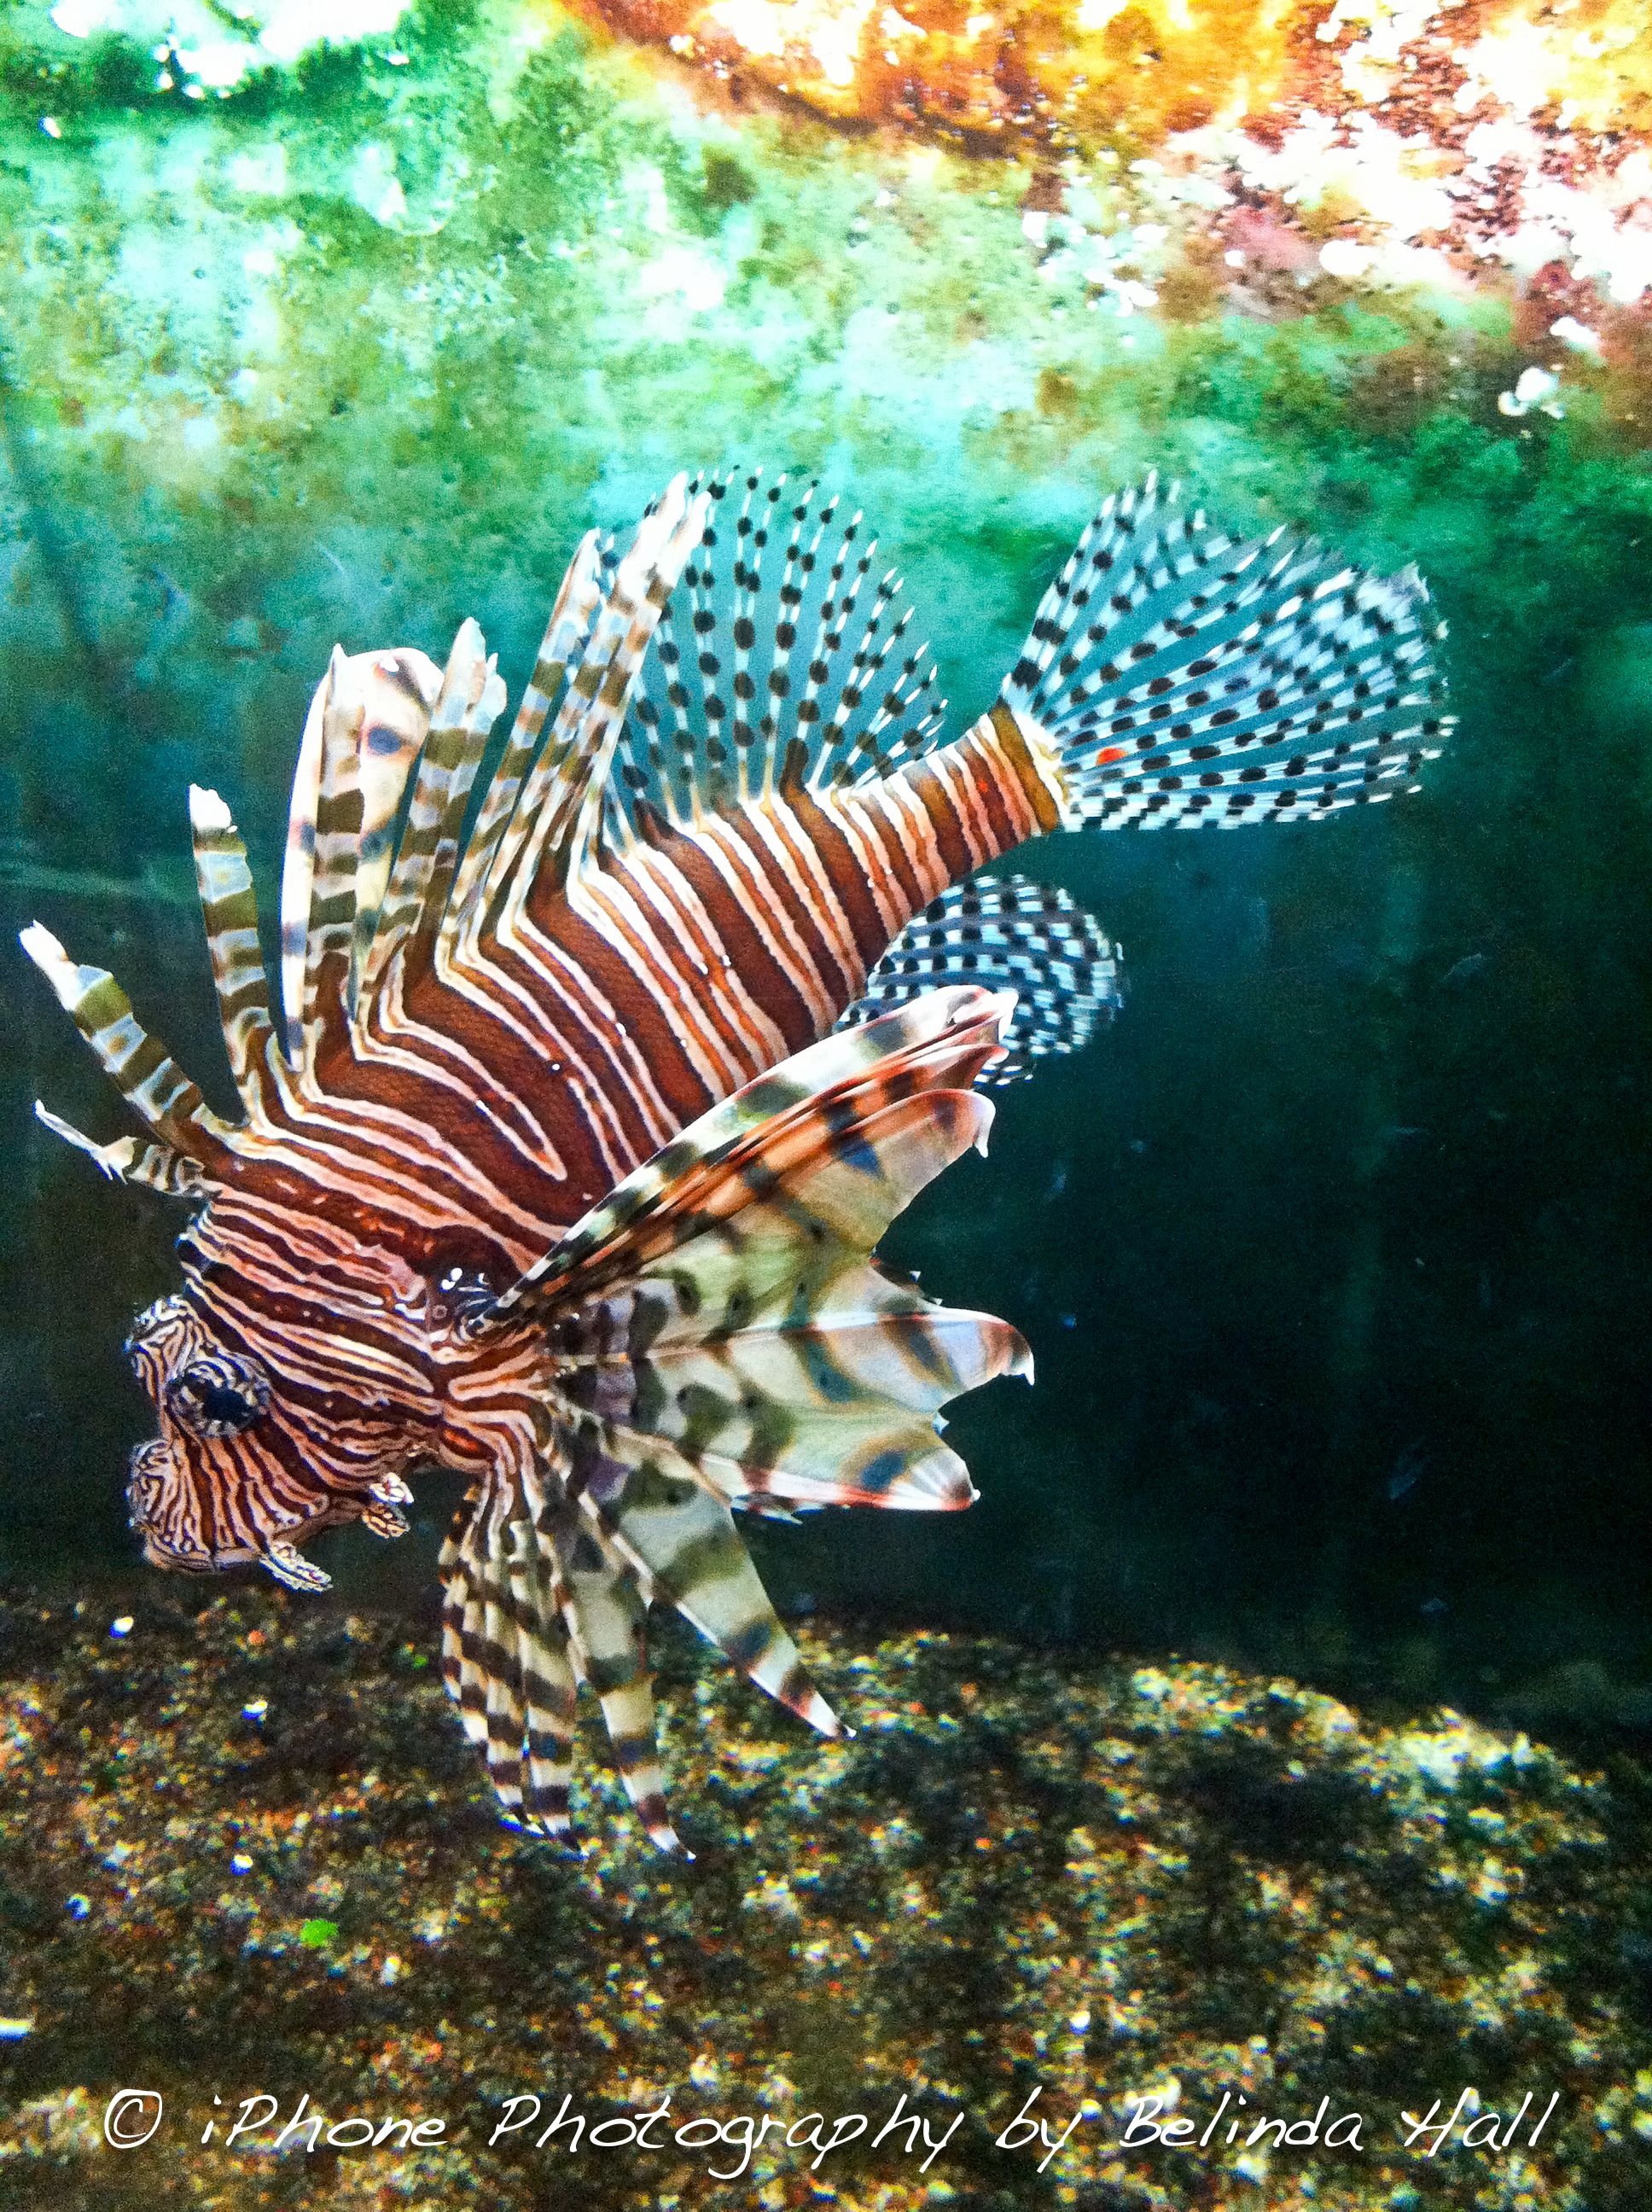 This lion fish is a very venomous fish Its stripes and eccentric